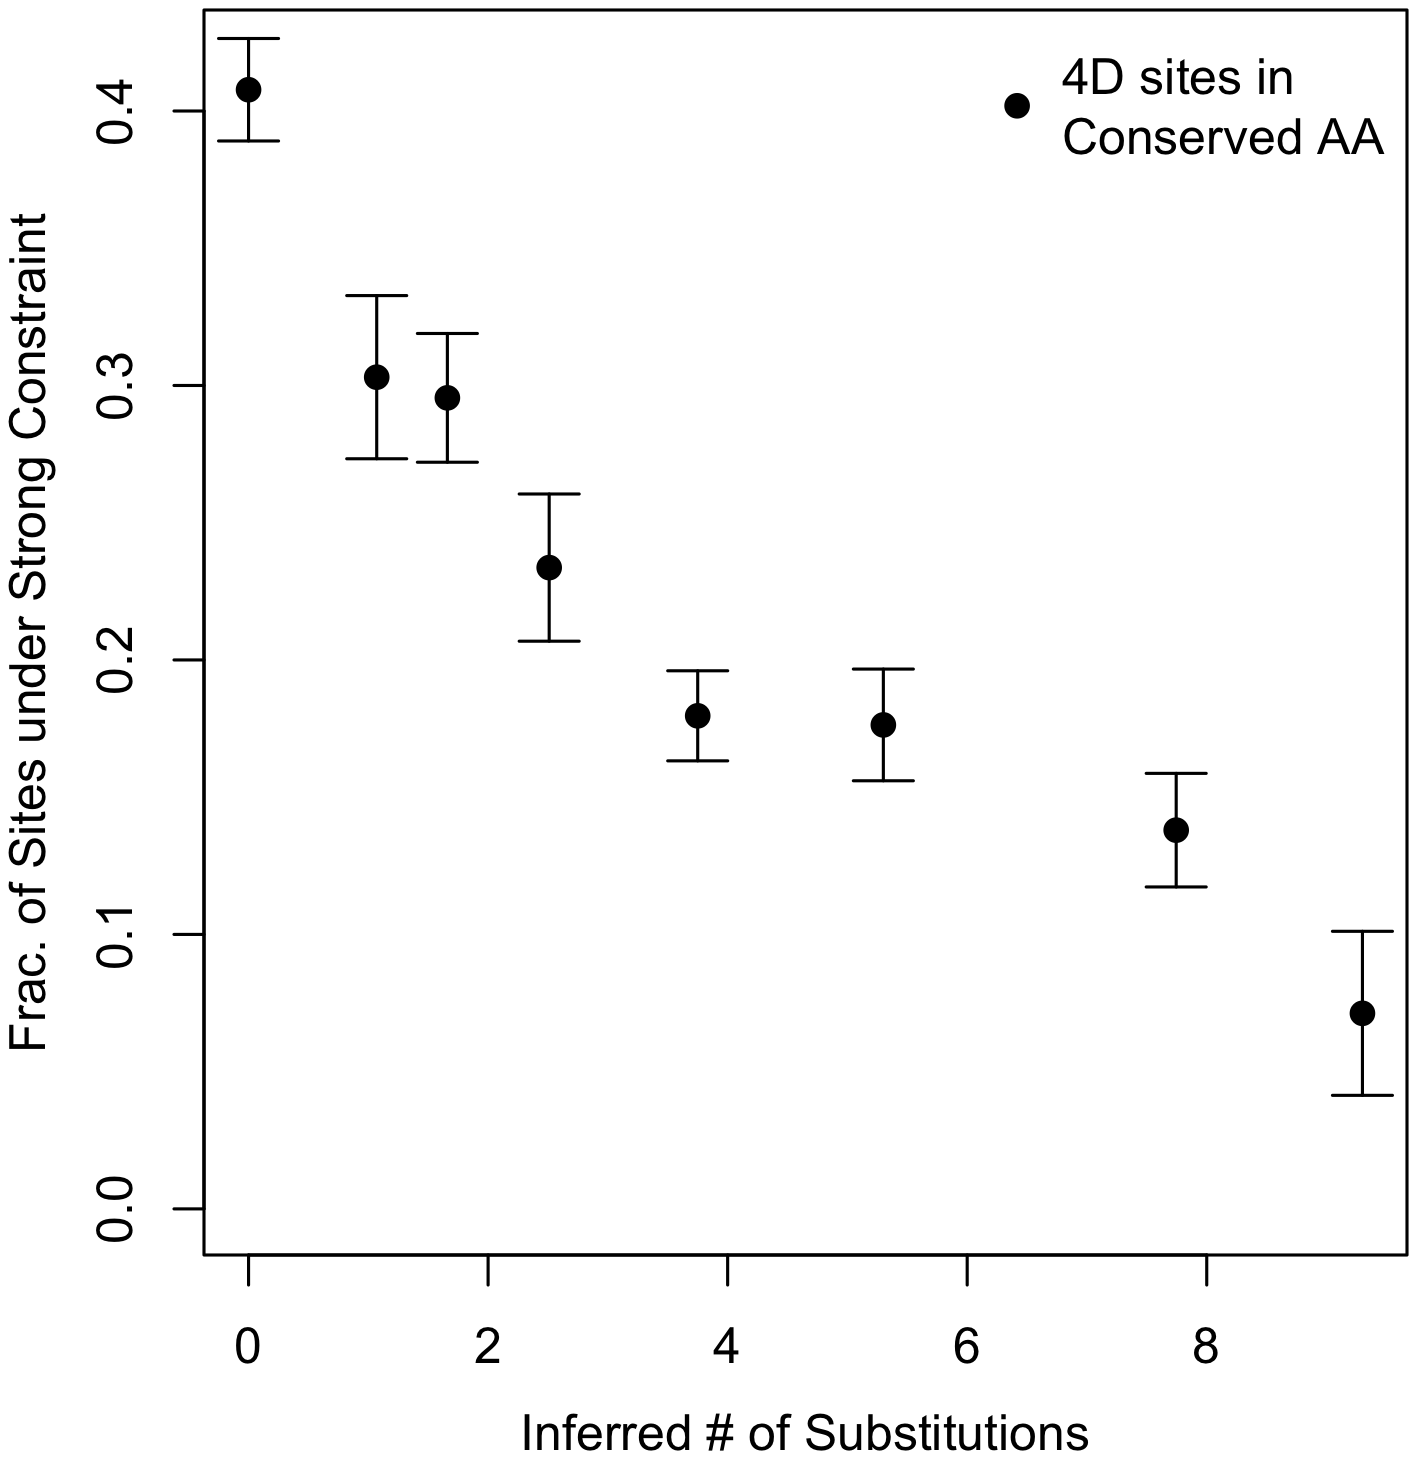 Conservation versus constraint at 4D sites in conserved amino acids.